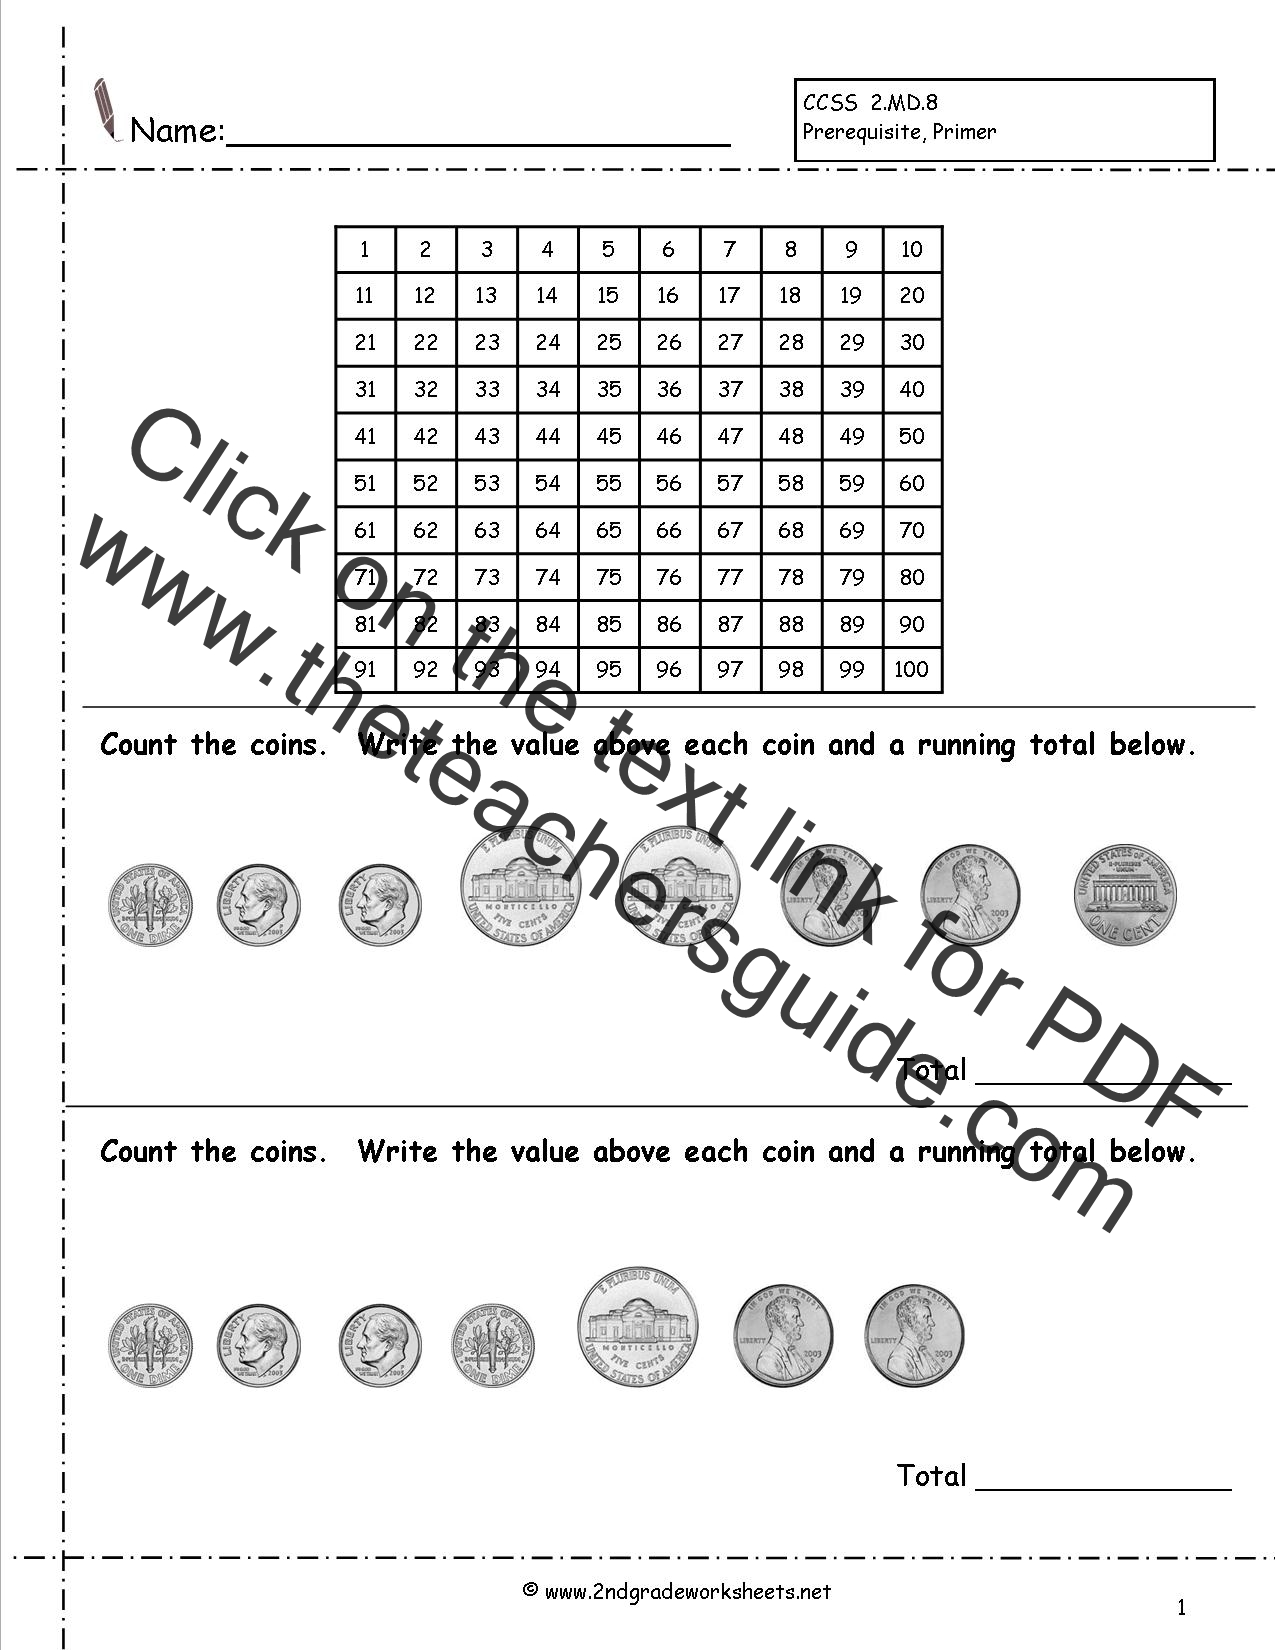 CCSS 2.MD.8 Worksheets, Counting Coins Worksheets, Money